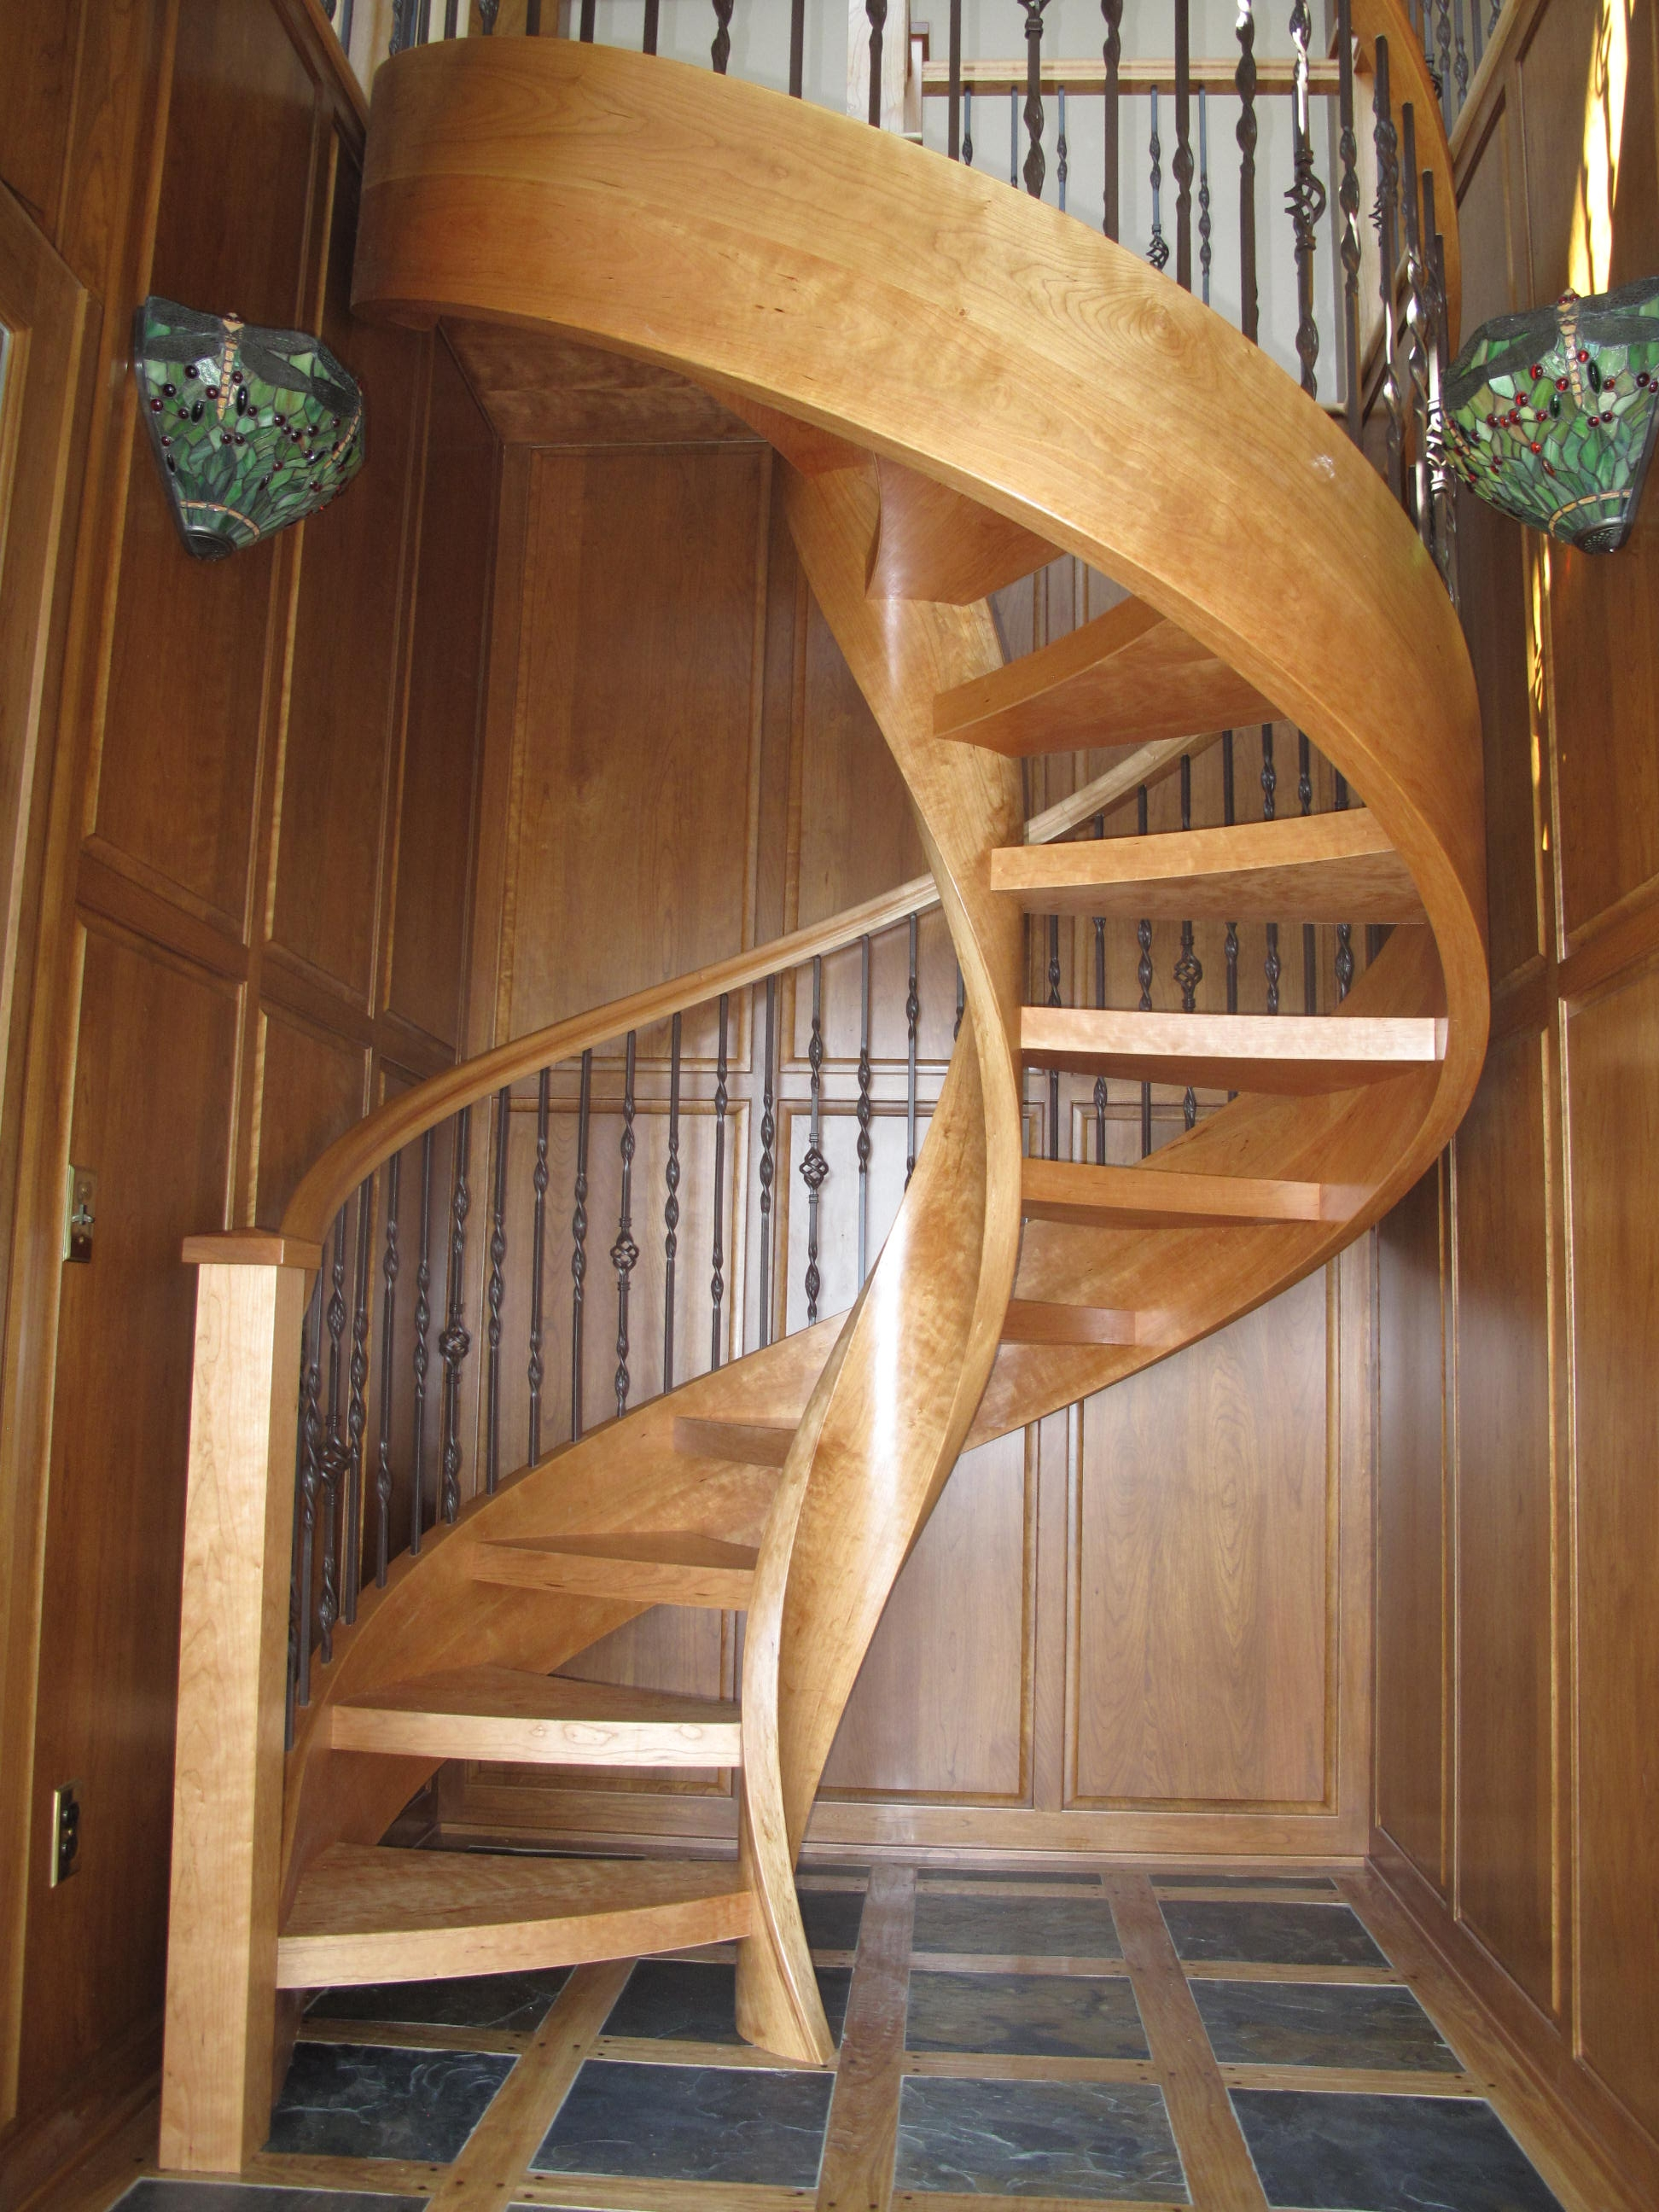 Blog Custom Spiral Staircases | Wooden Spiral Staircase For Sale | 3 Floor | Twist | Wrought Iron | 36 Inch Diameter | Free Standing